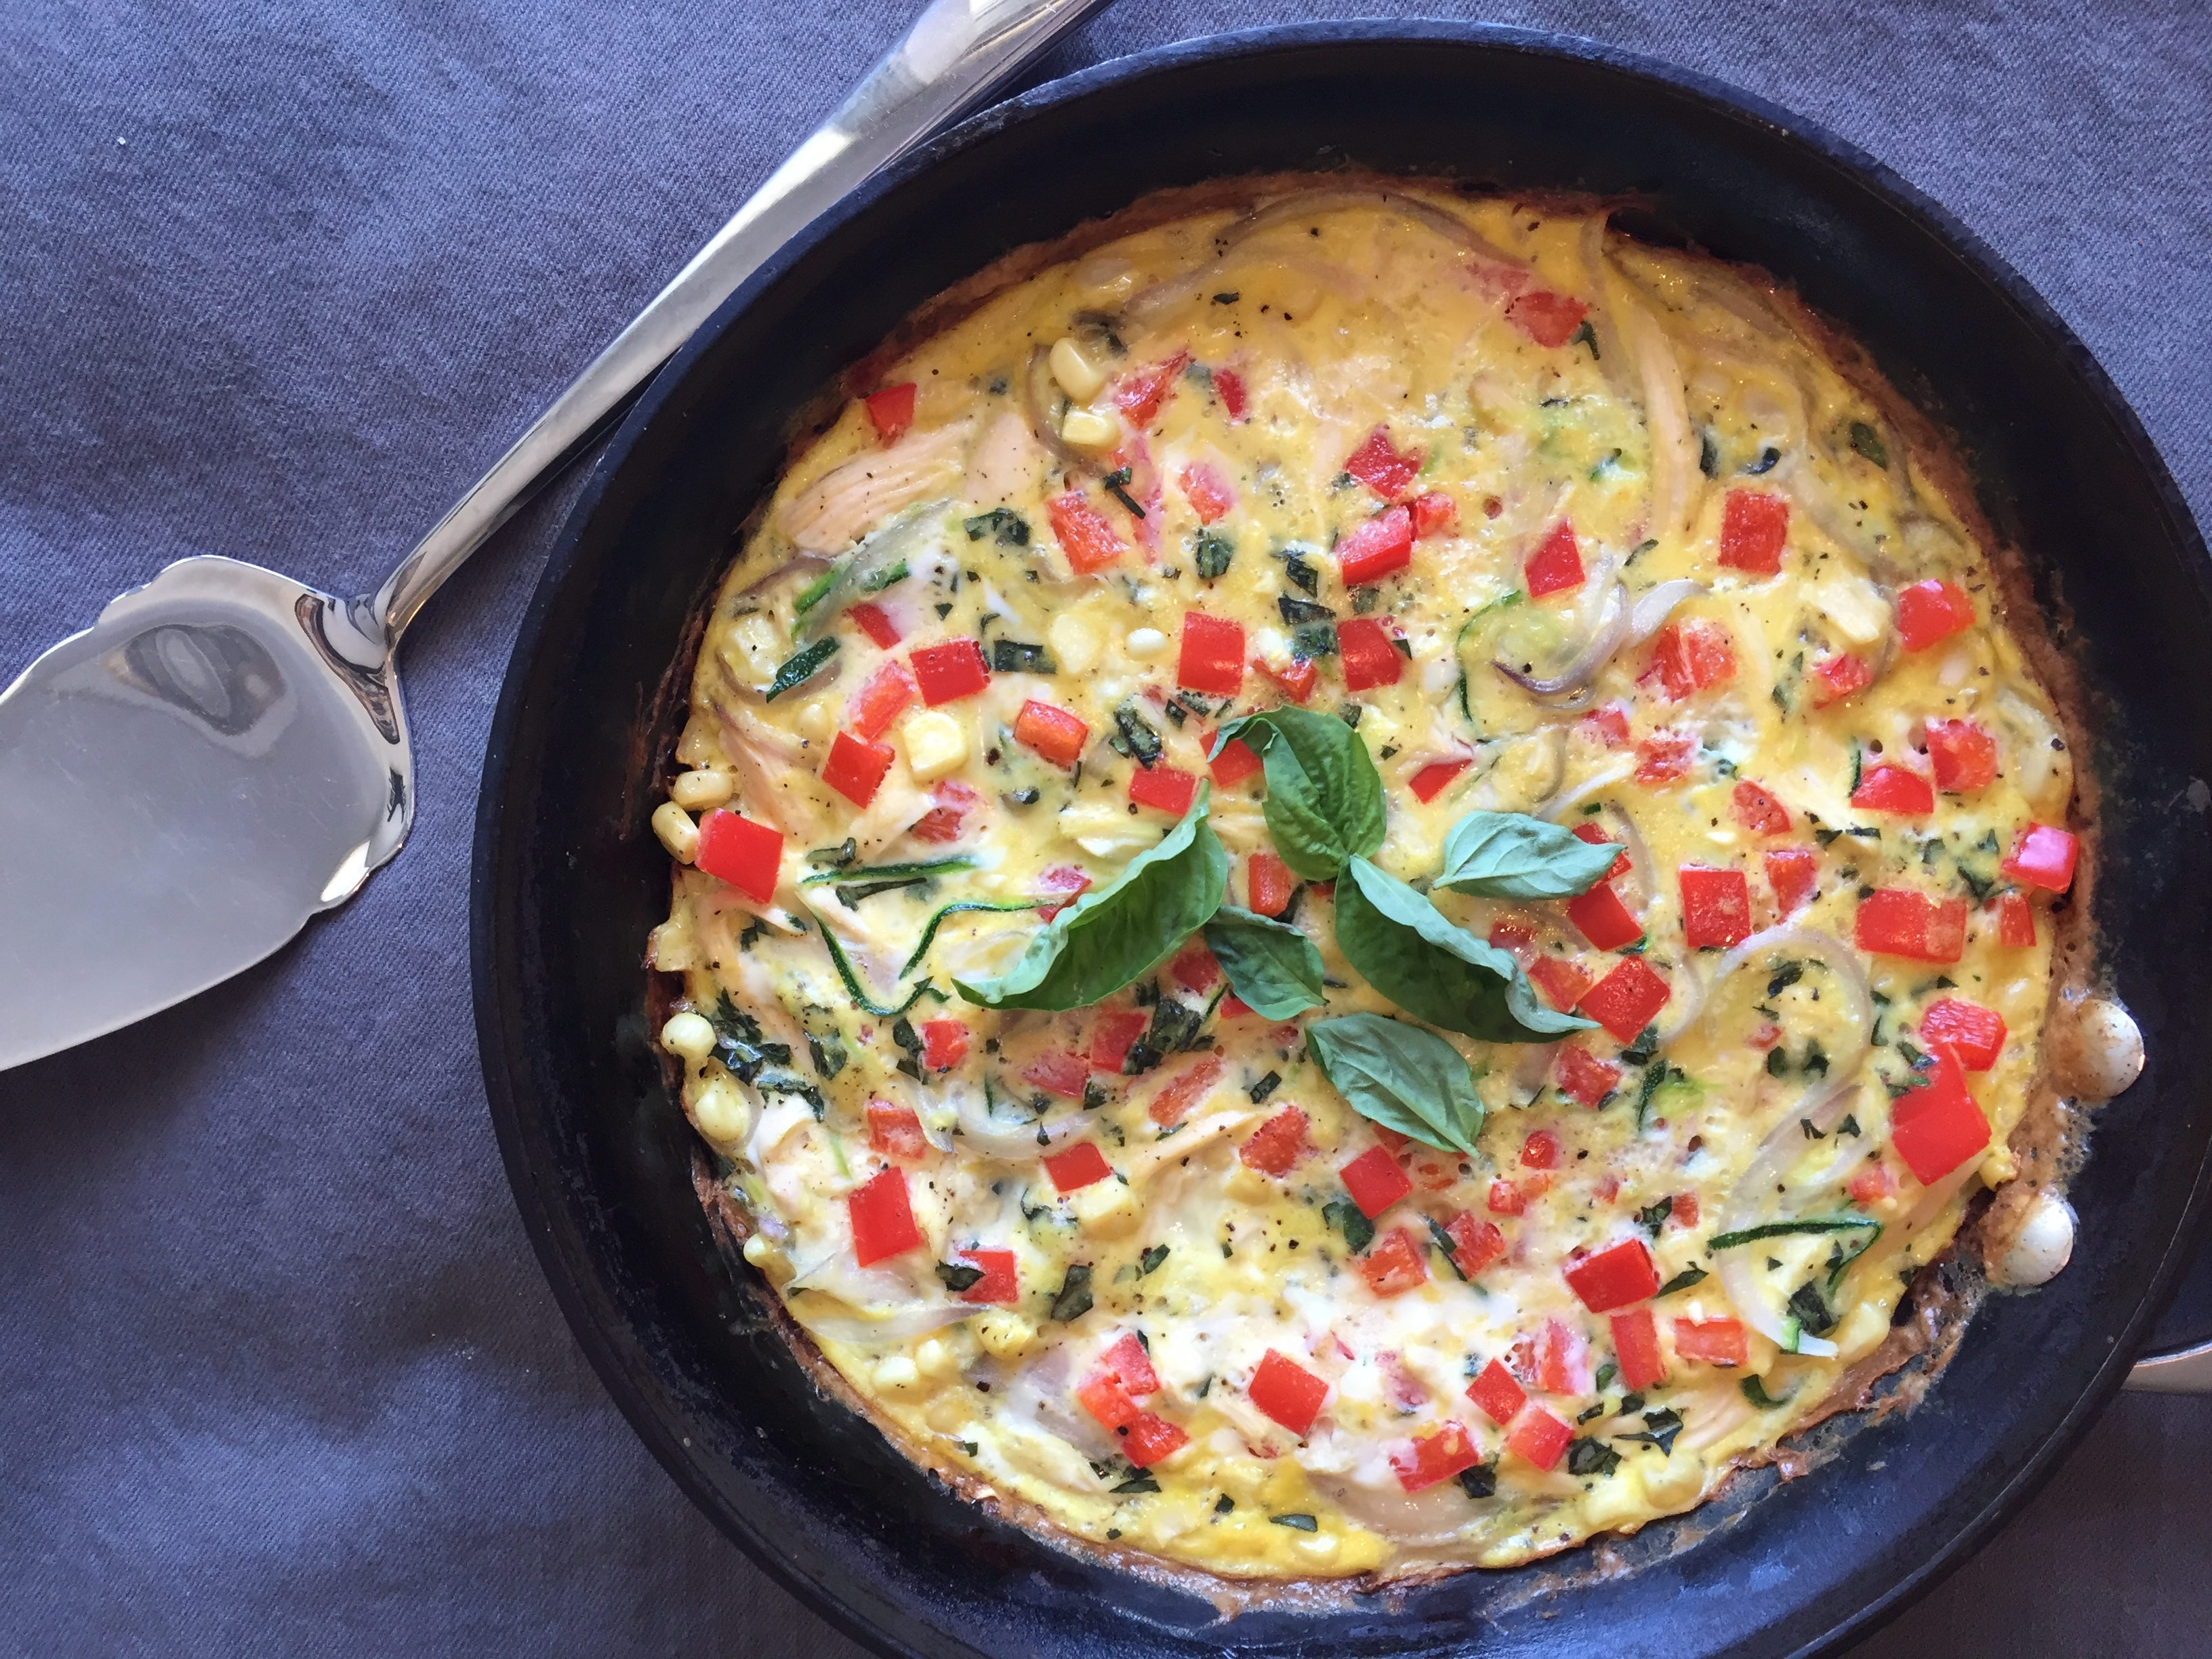 Chicken-basil vegetable frittata with zucchini, bell peppers, and sweet summer corn